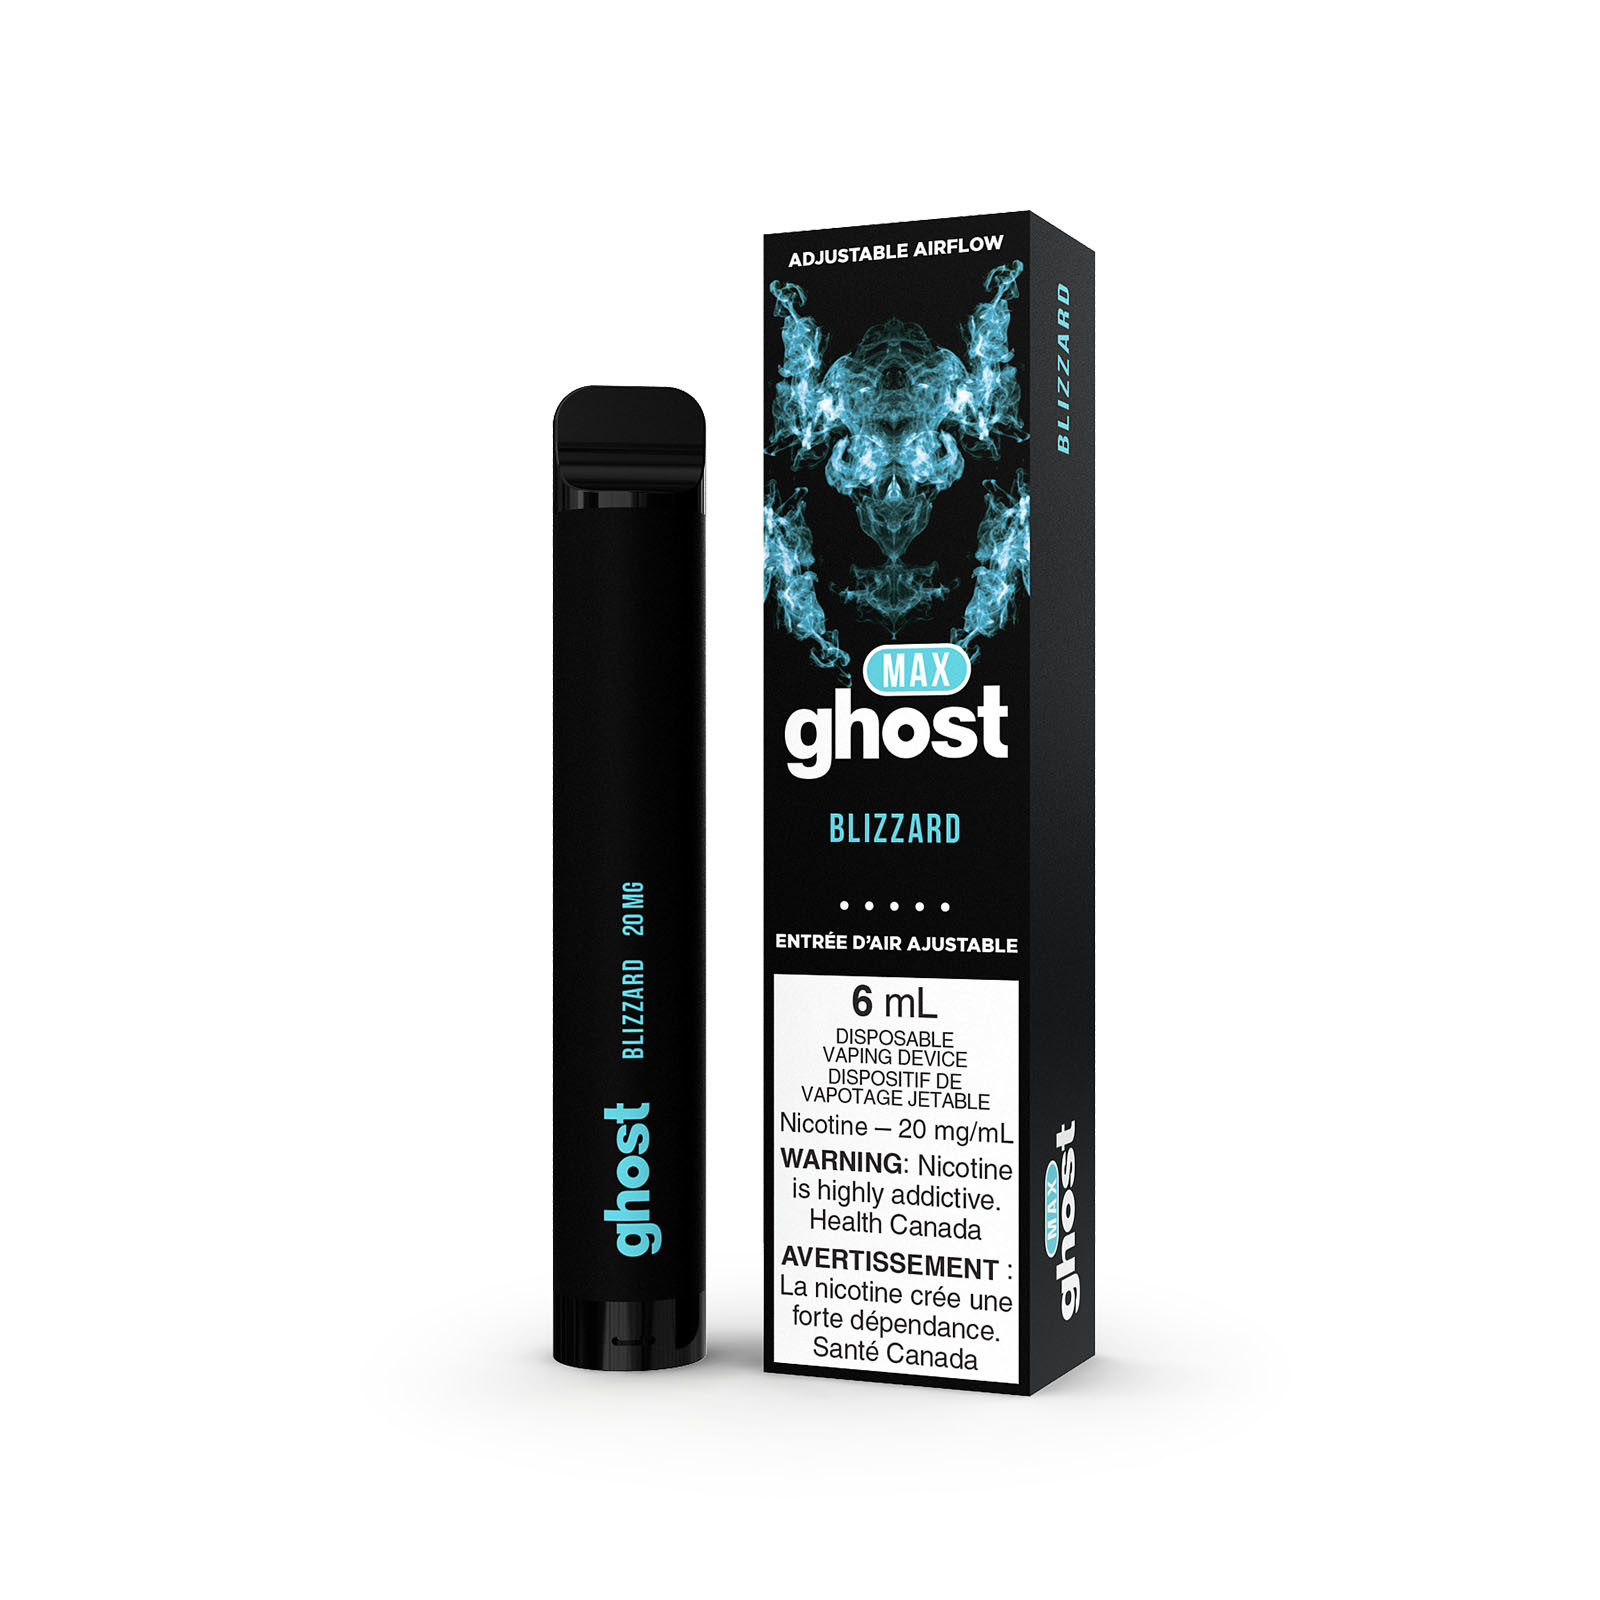 Ghost Ghost Max Blizzard Disposable Vape